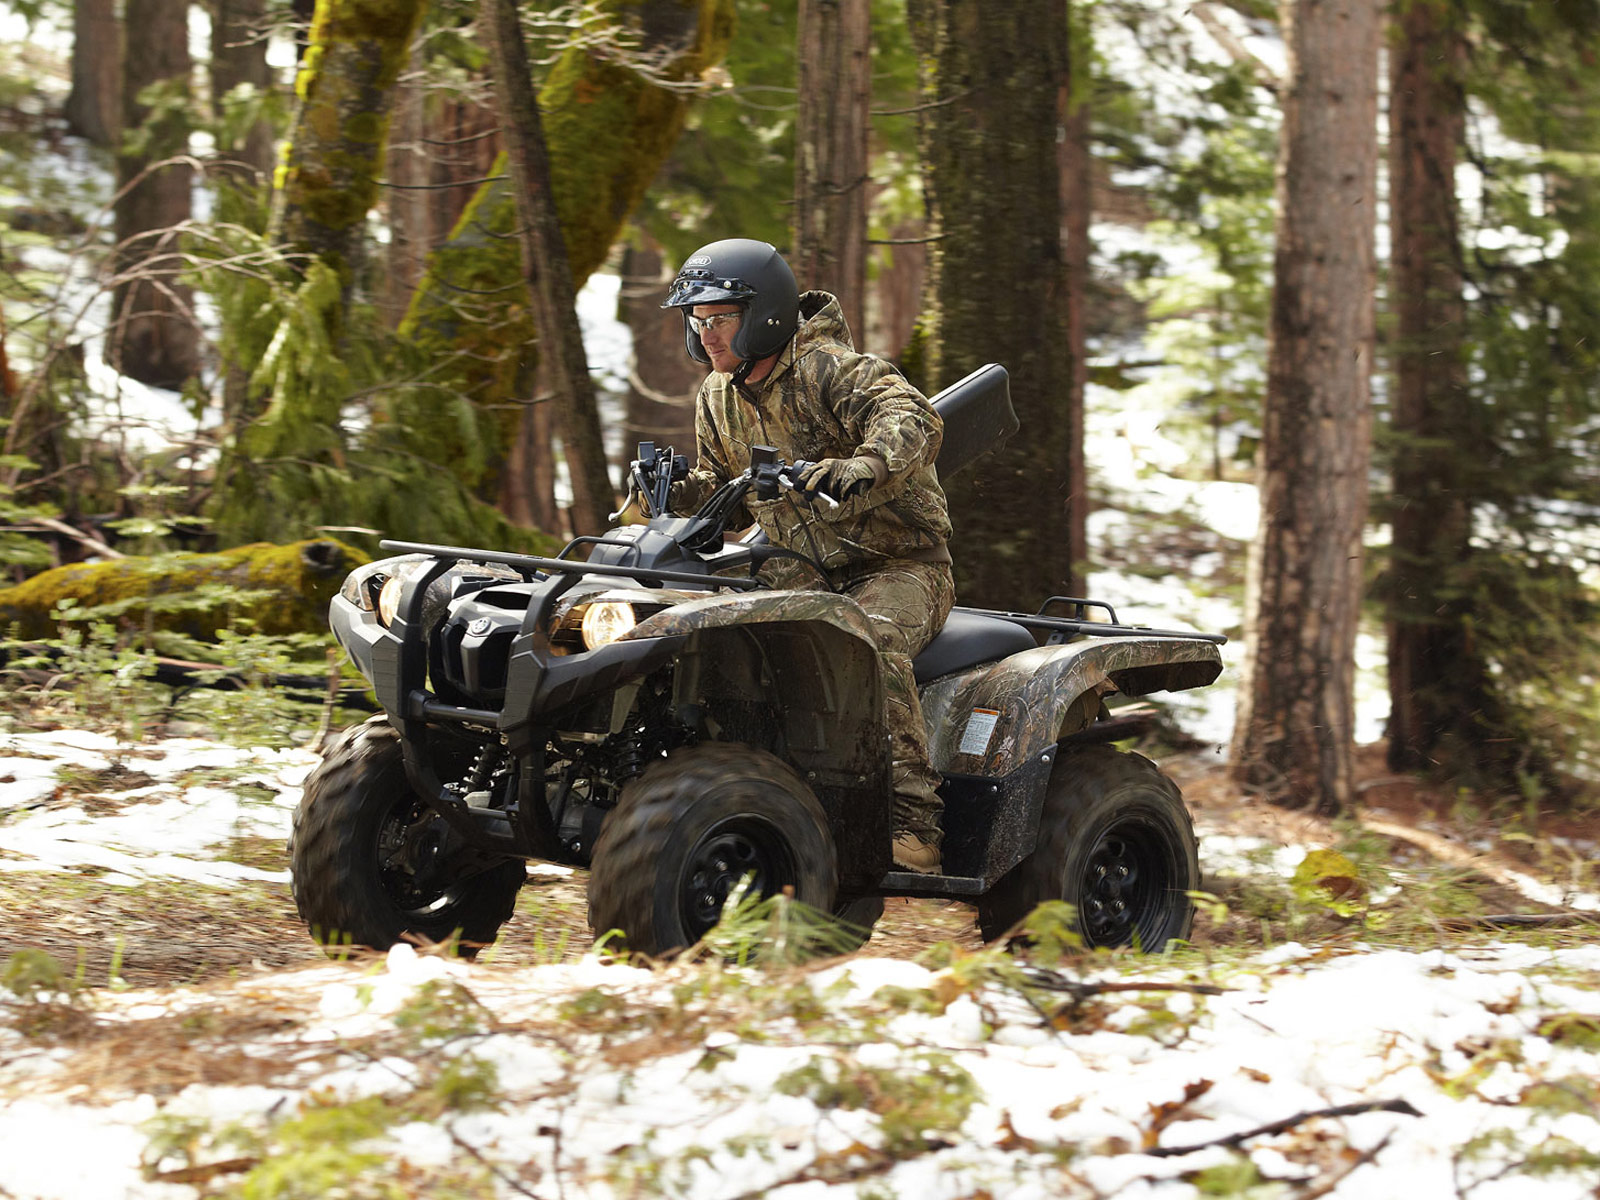 http://1.bp.blogspot.com/-UwkmkYIo20Y/T_6iqqcHYOI/AAAAAAAACcc/L5wYrBl0wfs/s1600/2011-Yamaha-Grizzly-550-FI-4x4-ATV-pictures-1.jpg